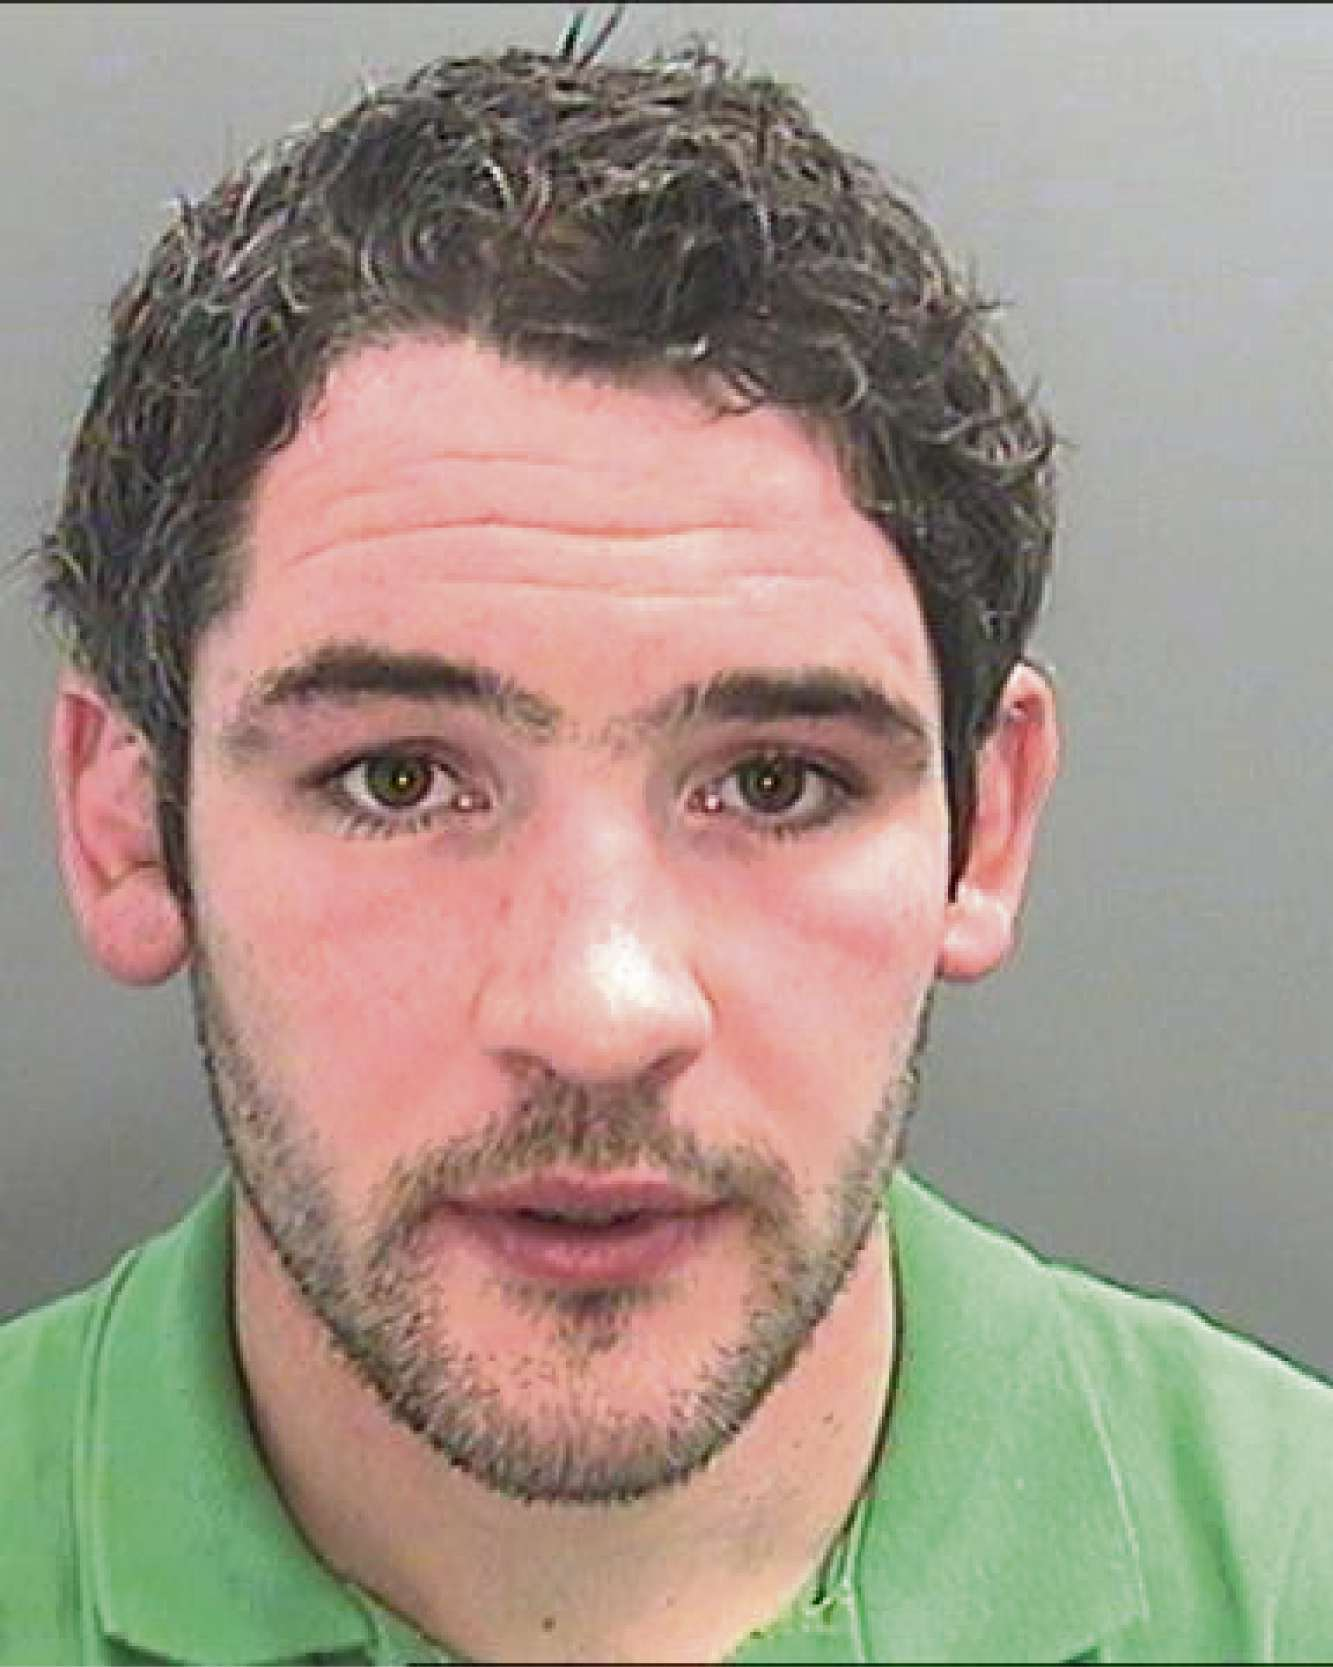 Cross Keys rugby player jailed for punching opponent after match